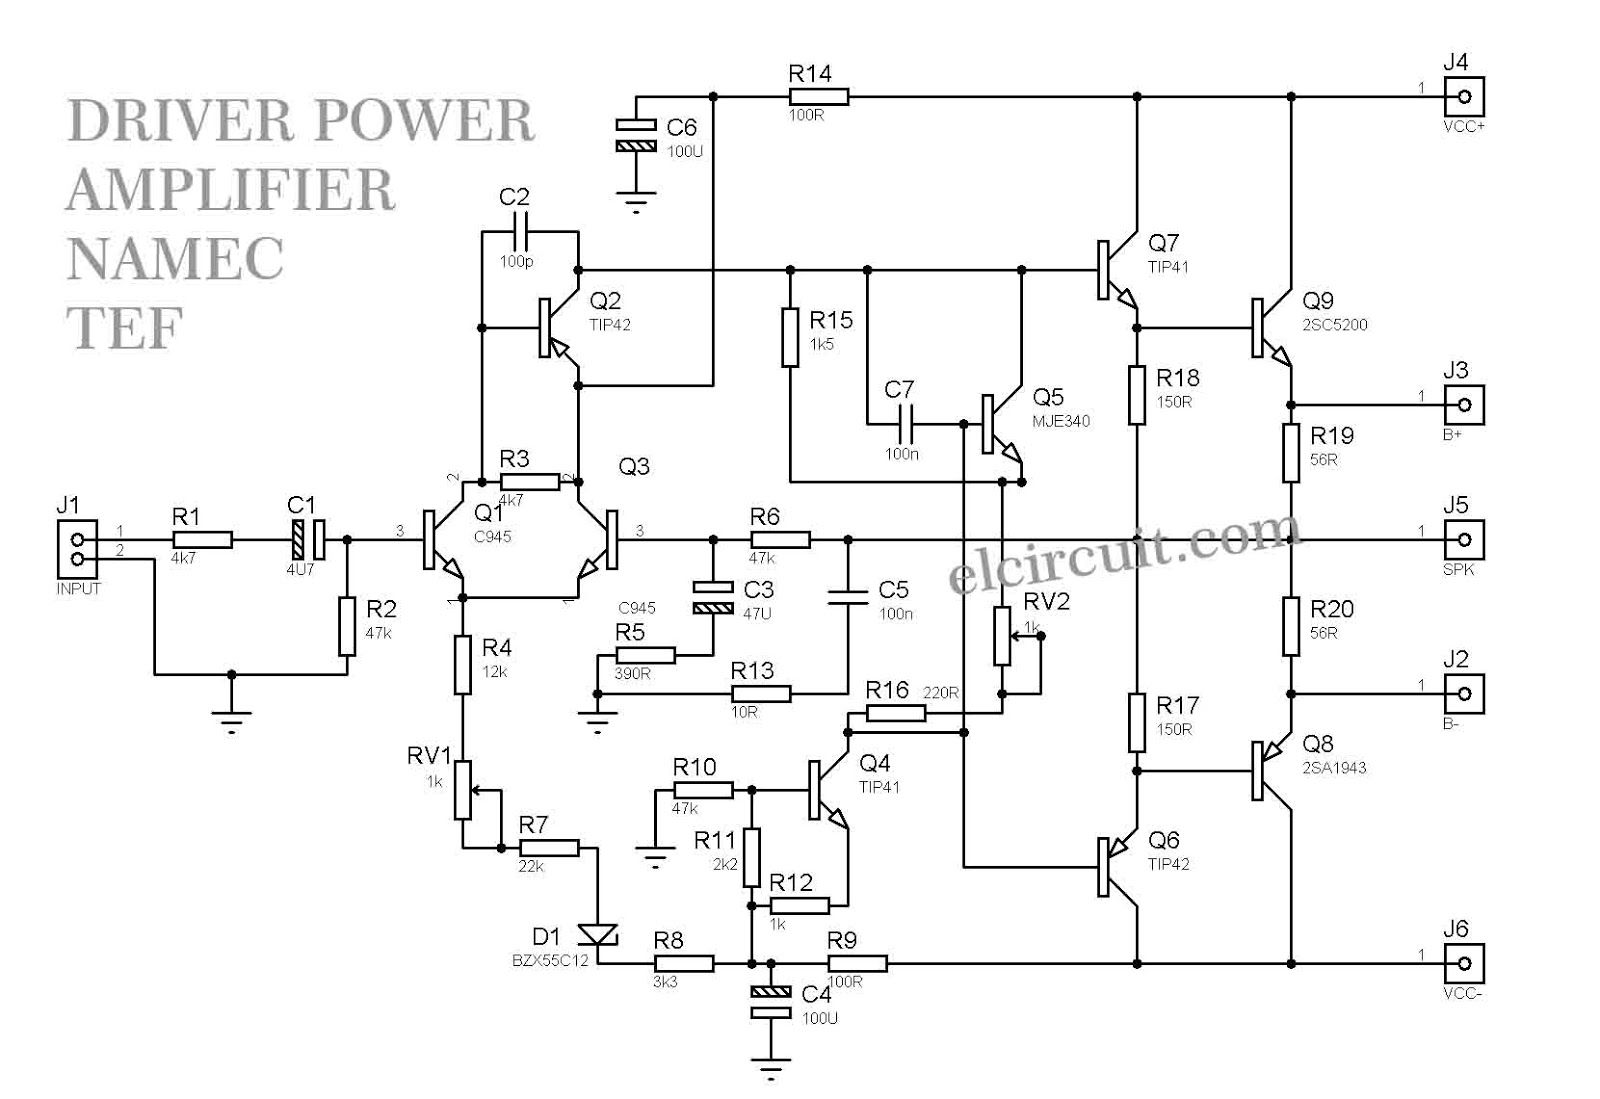 medium resolution of 1000w driver power amplifier namec tef electronic circuit electronic circuit circuit diagram audio